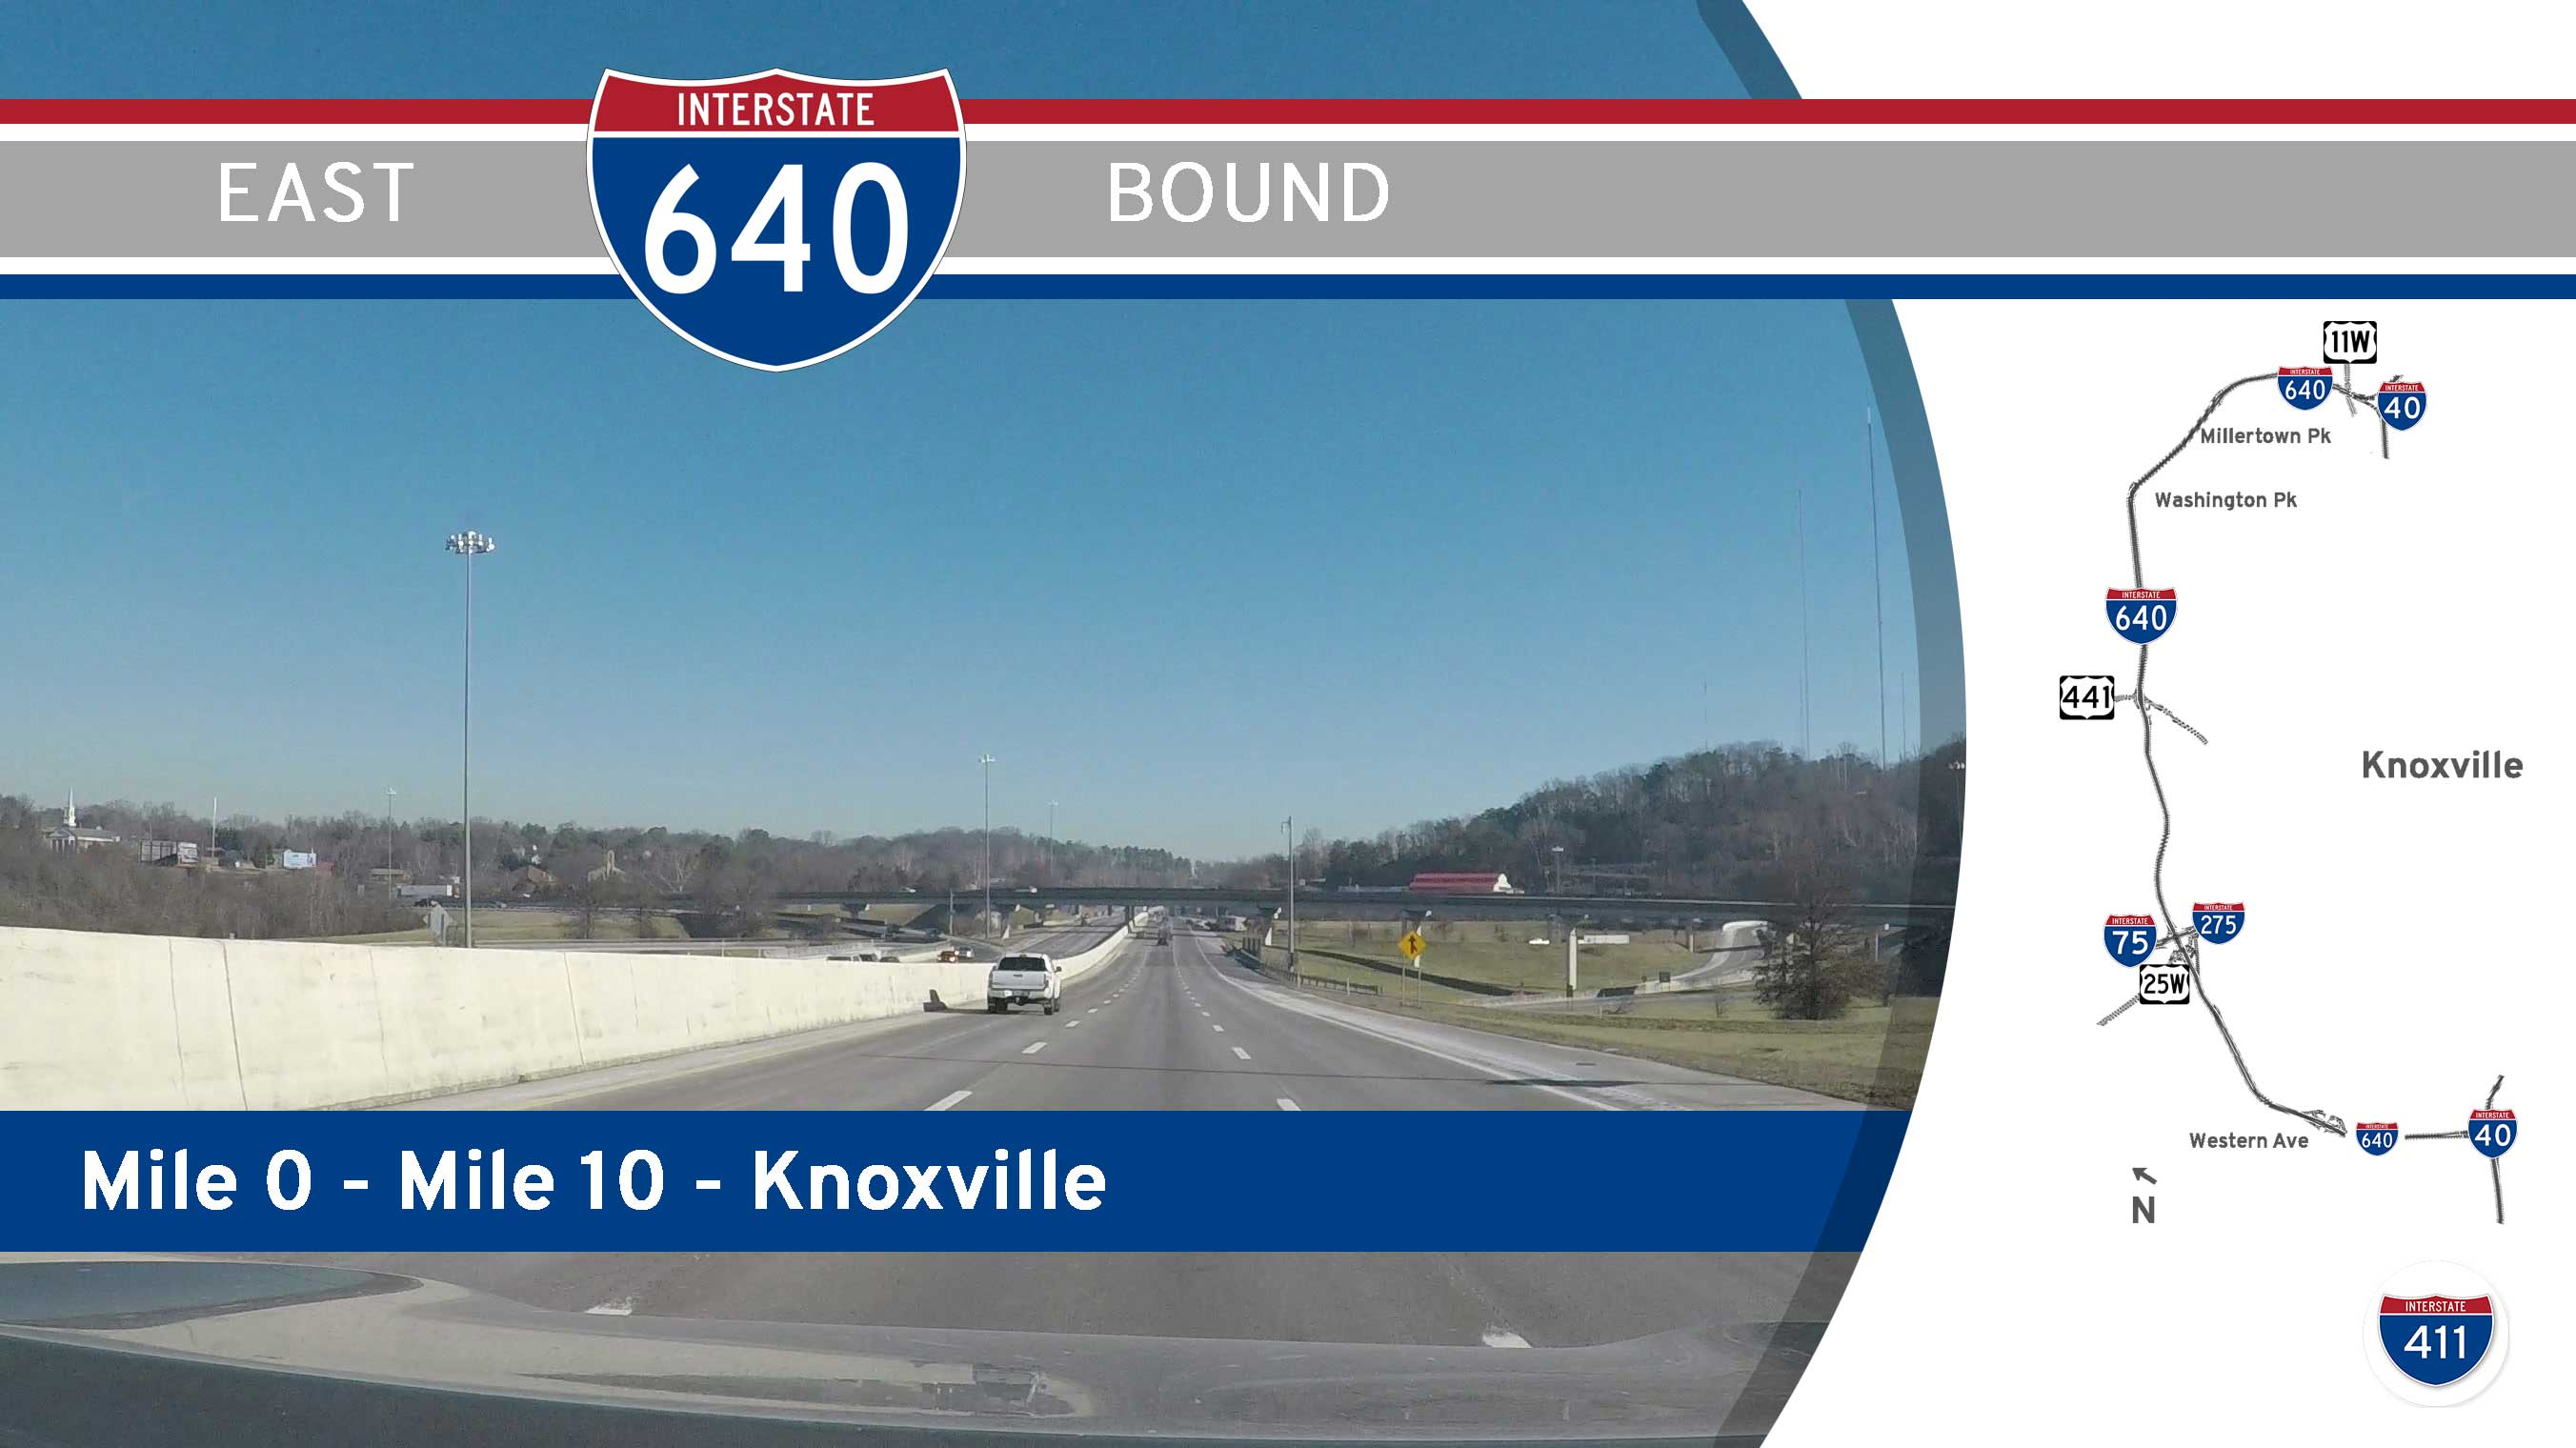 Interstate 640 - Mile 0 to Mile 10 - Knoxville, Tennessee